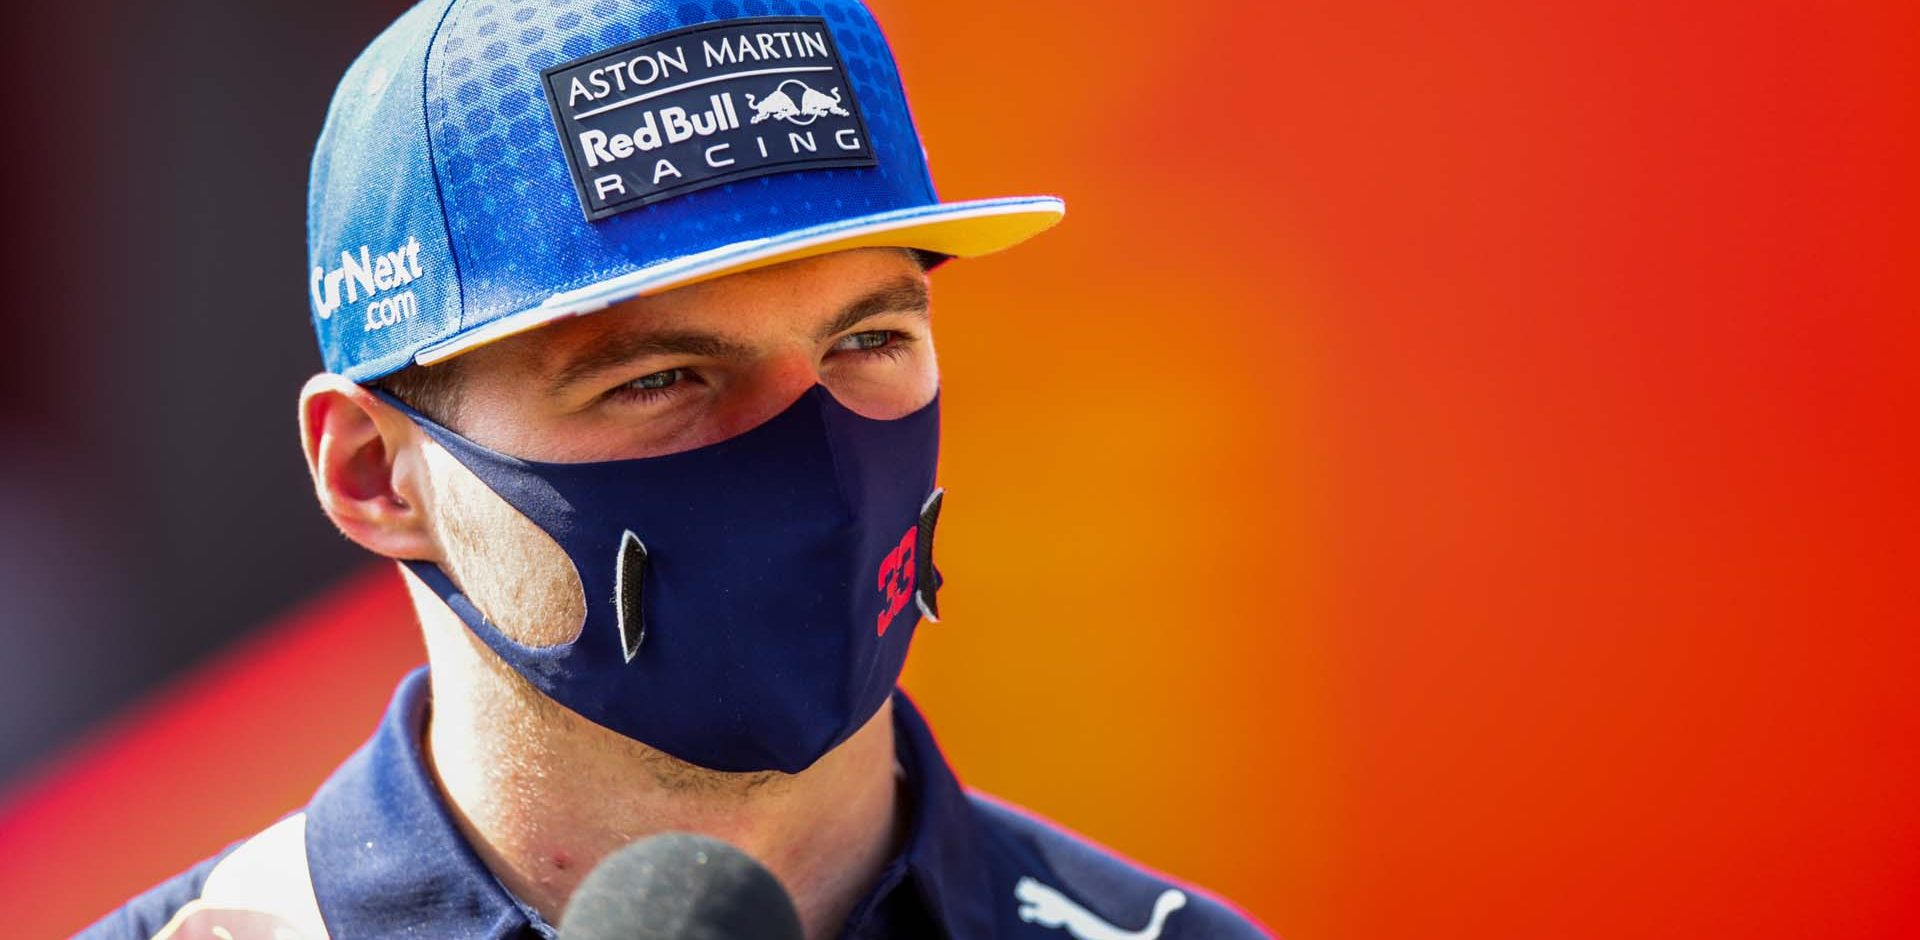 MONZA, ITALY - SEPTEMBER 06: Max Verstappen of Red Bull Racing and The Netherlands  during the F1 Grand Prix of Italy at Autodromo di Monza on September 06, 2020 in Monza, Italy. (Photo by Peter Fox/Getty Images)